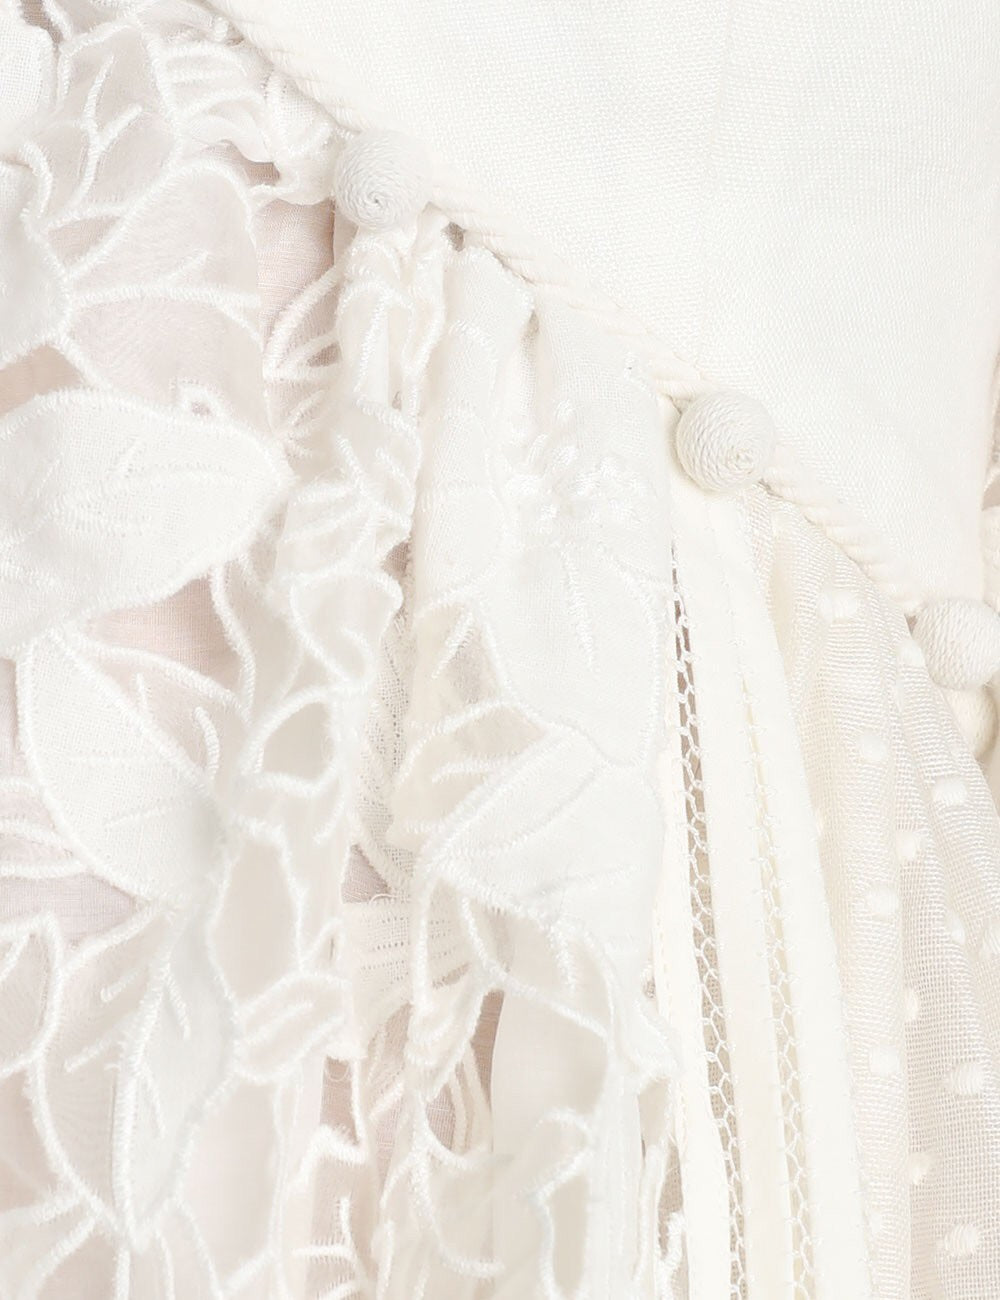 d2c8a3c60698 ... Load image into Gallery viewer, ZIMMERMANN Corsage Embellished Mini  Dress